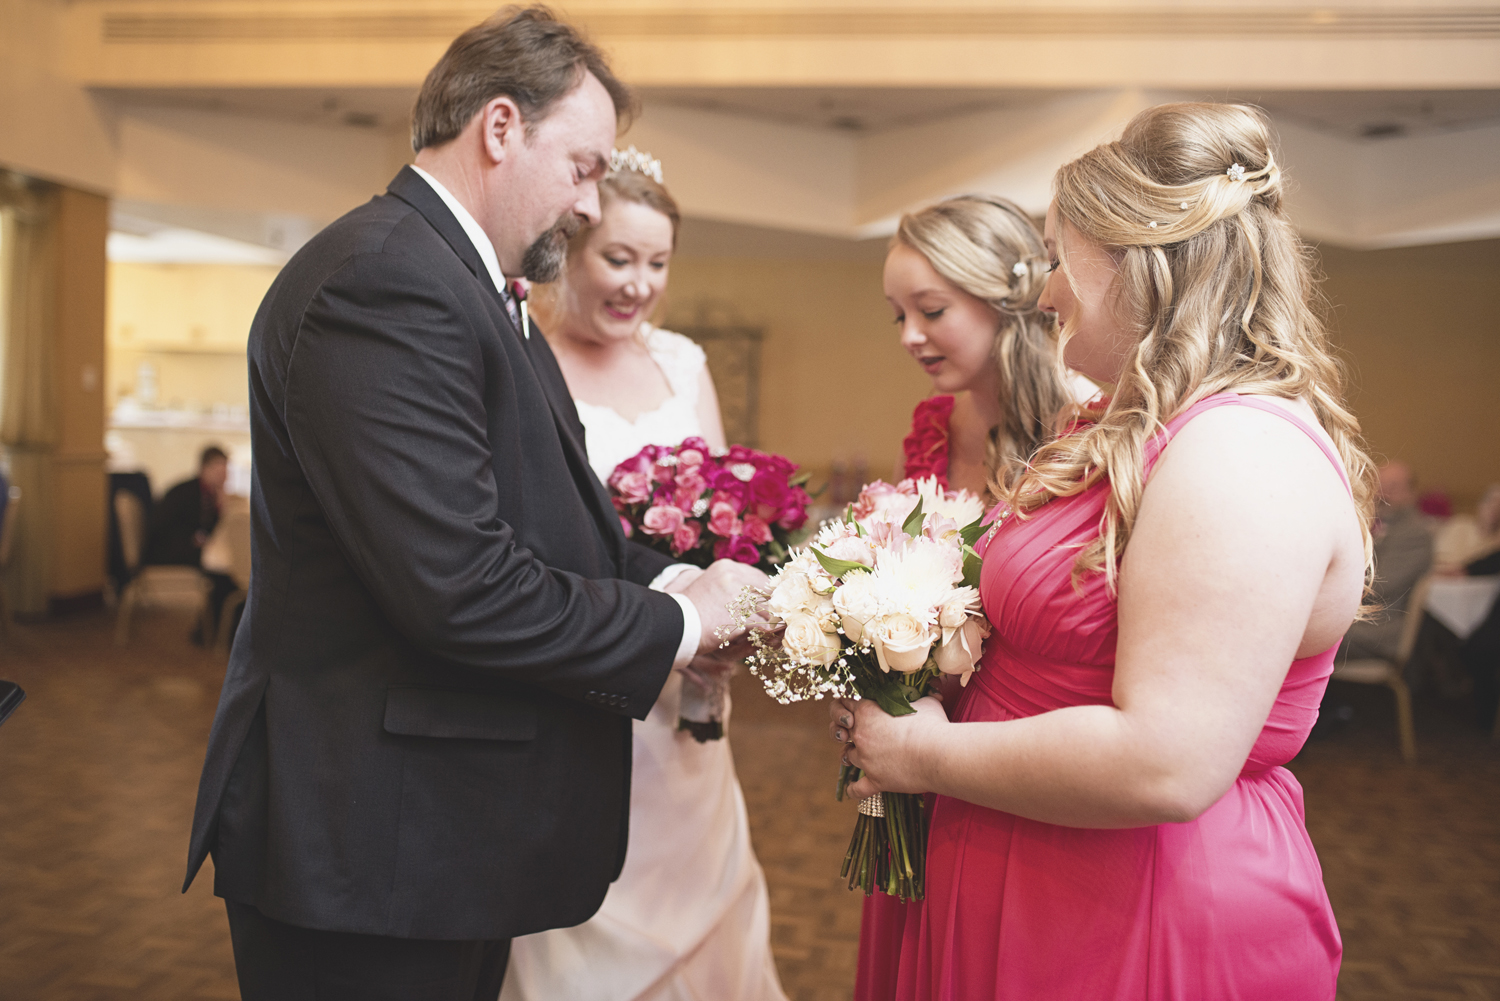 Ring ceremony with daughters | Military wedding | Pink and white